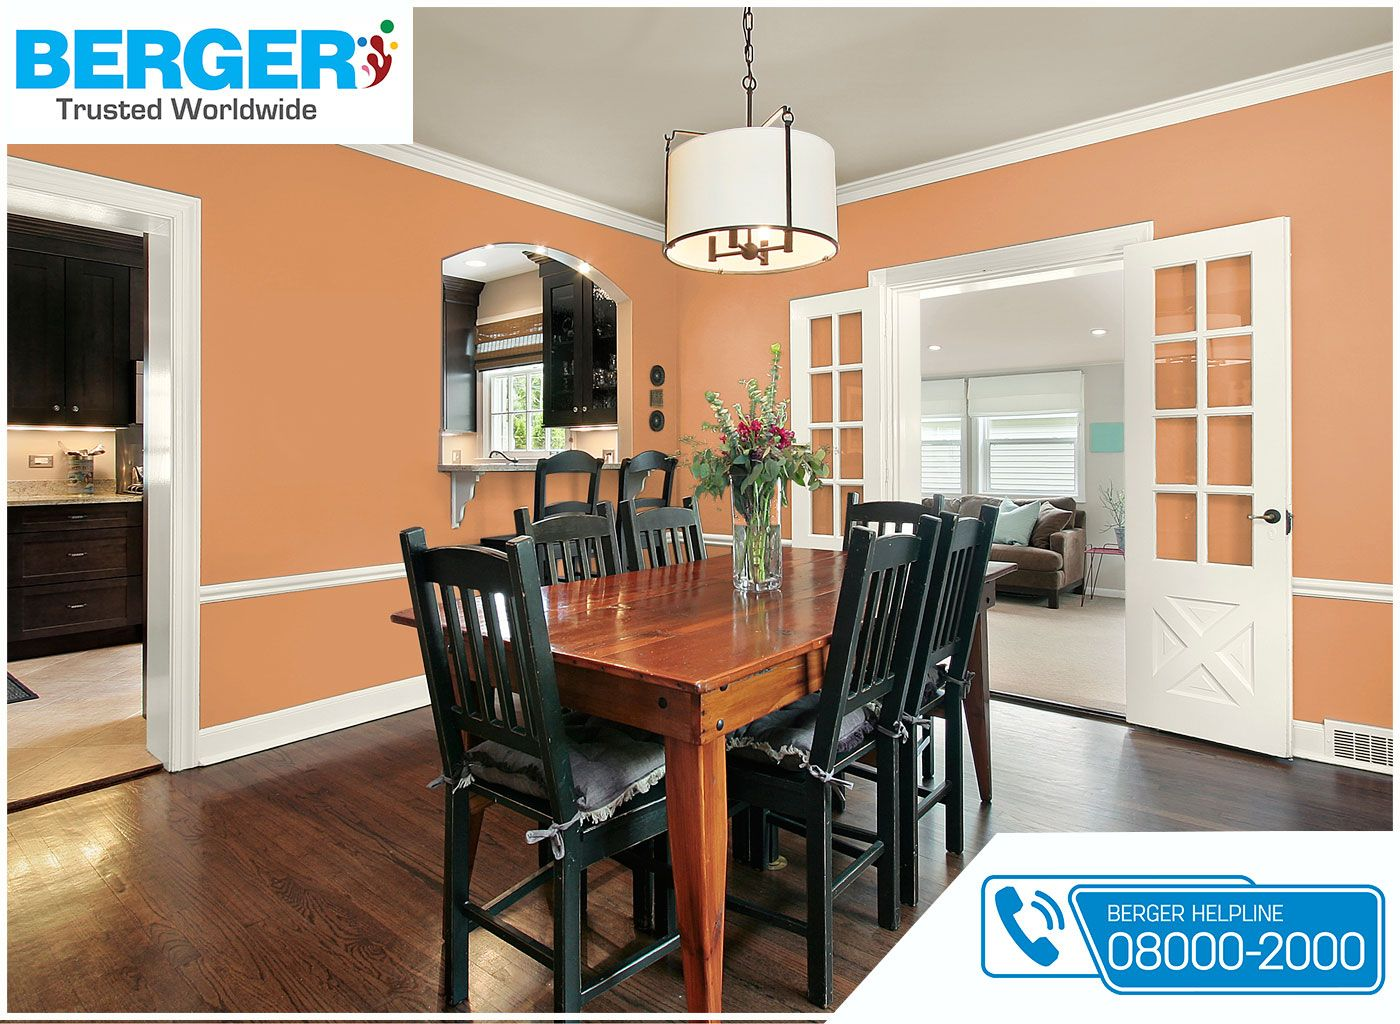 Kitchen Remodel Ideas Using Peach Colors on kitchen remodel makeover, fences color ideas, garage color ideas, kitchen remodel inspiration, decorating color ideas, fireplace color ideas, kitchen remodel kitchen, living room color ideas, kitchen remodel flooring, painting color ideas, bath color ideas, kitchen remodel diy, crown molding color ideas, kitchen remodel dining room, kitchen remodel antique, concrete color ideas, basement color ideas, dining room color ideas,